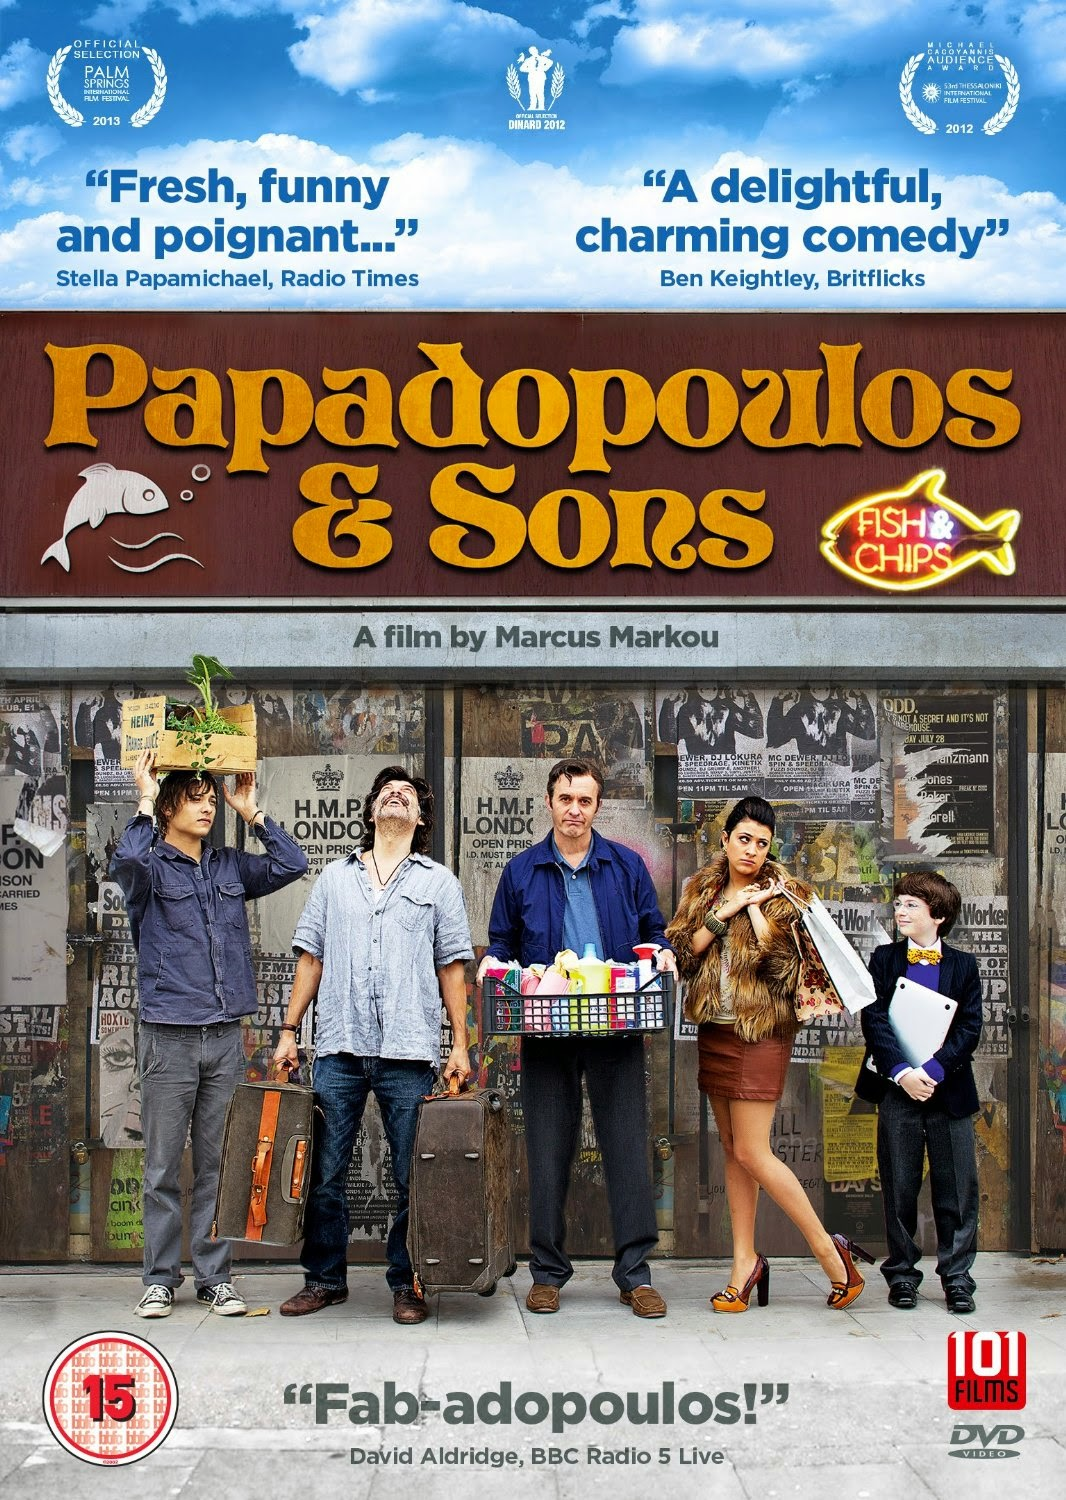 http://cineconomy.blogspot.gr/2014/10/papadopoulos-and-sons.html